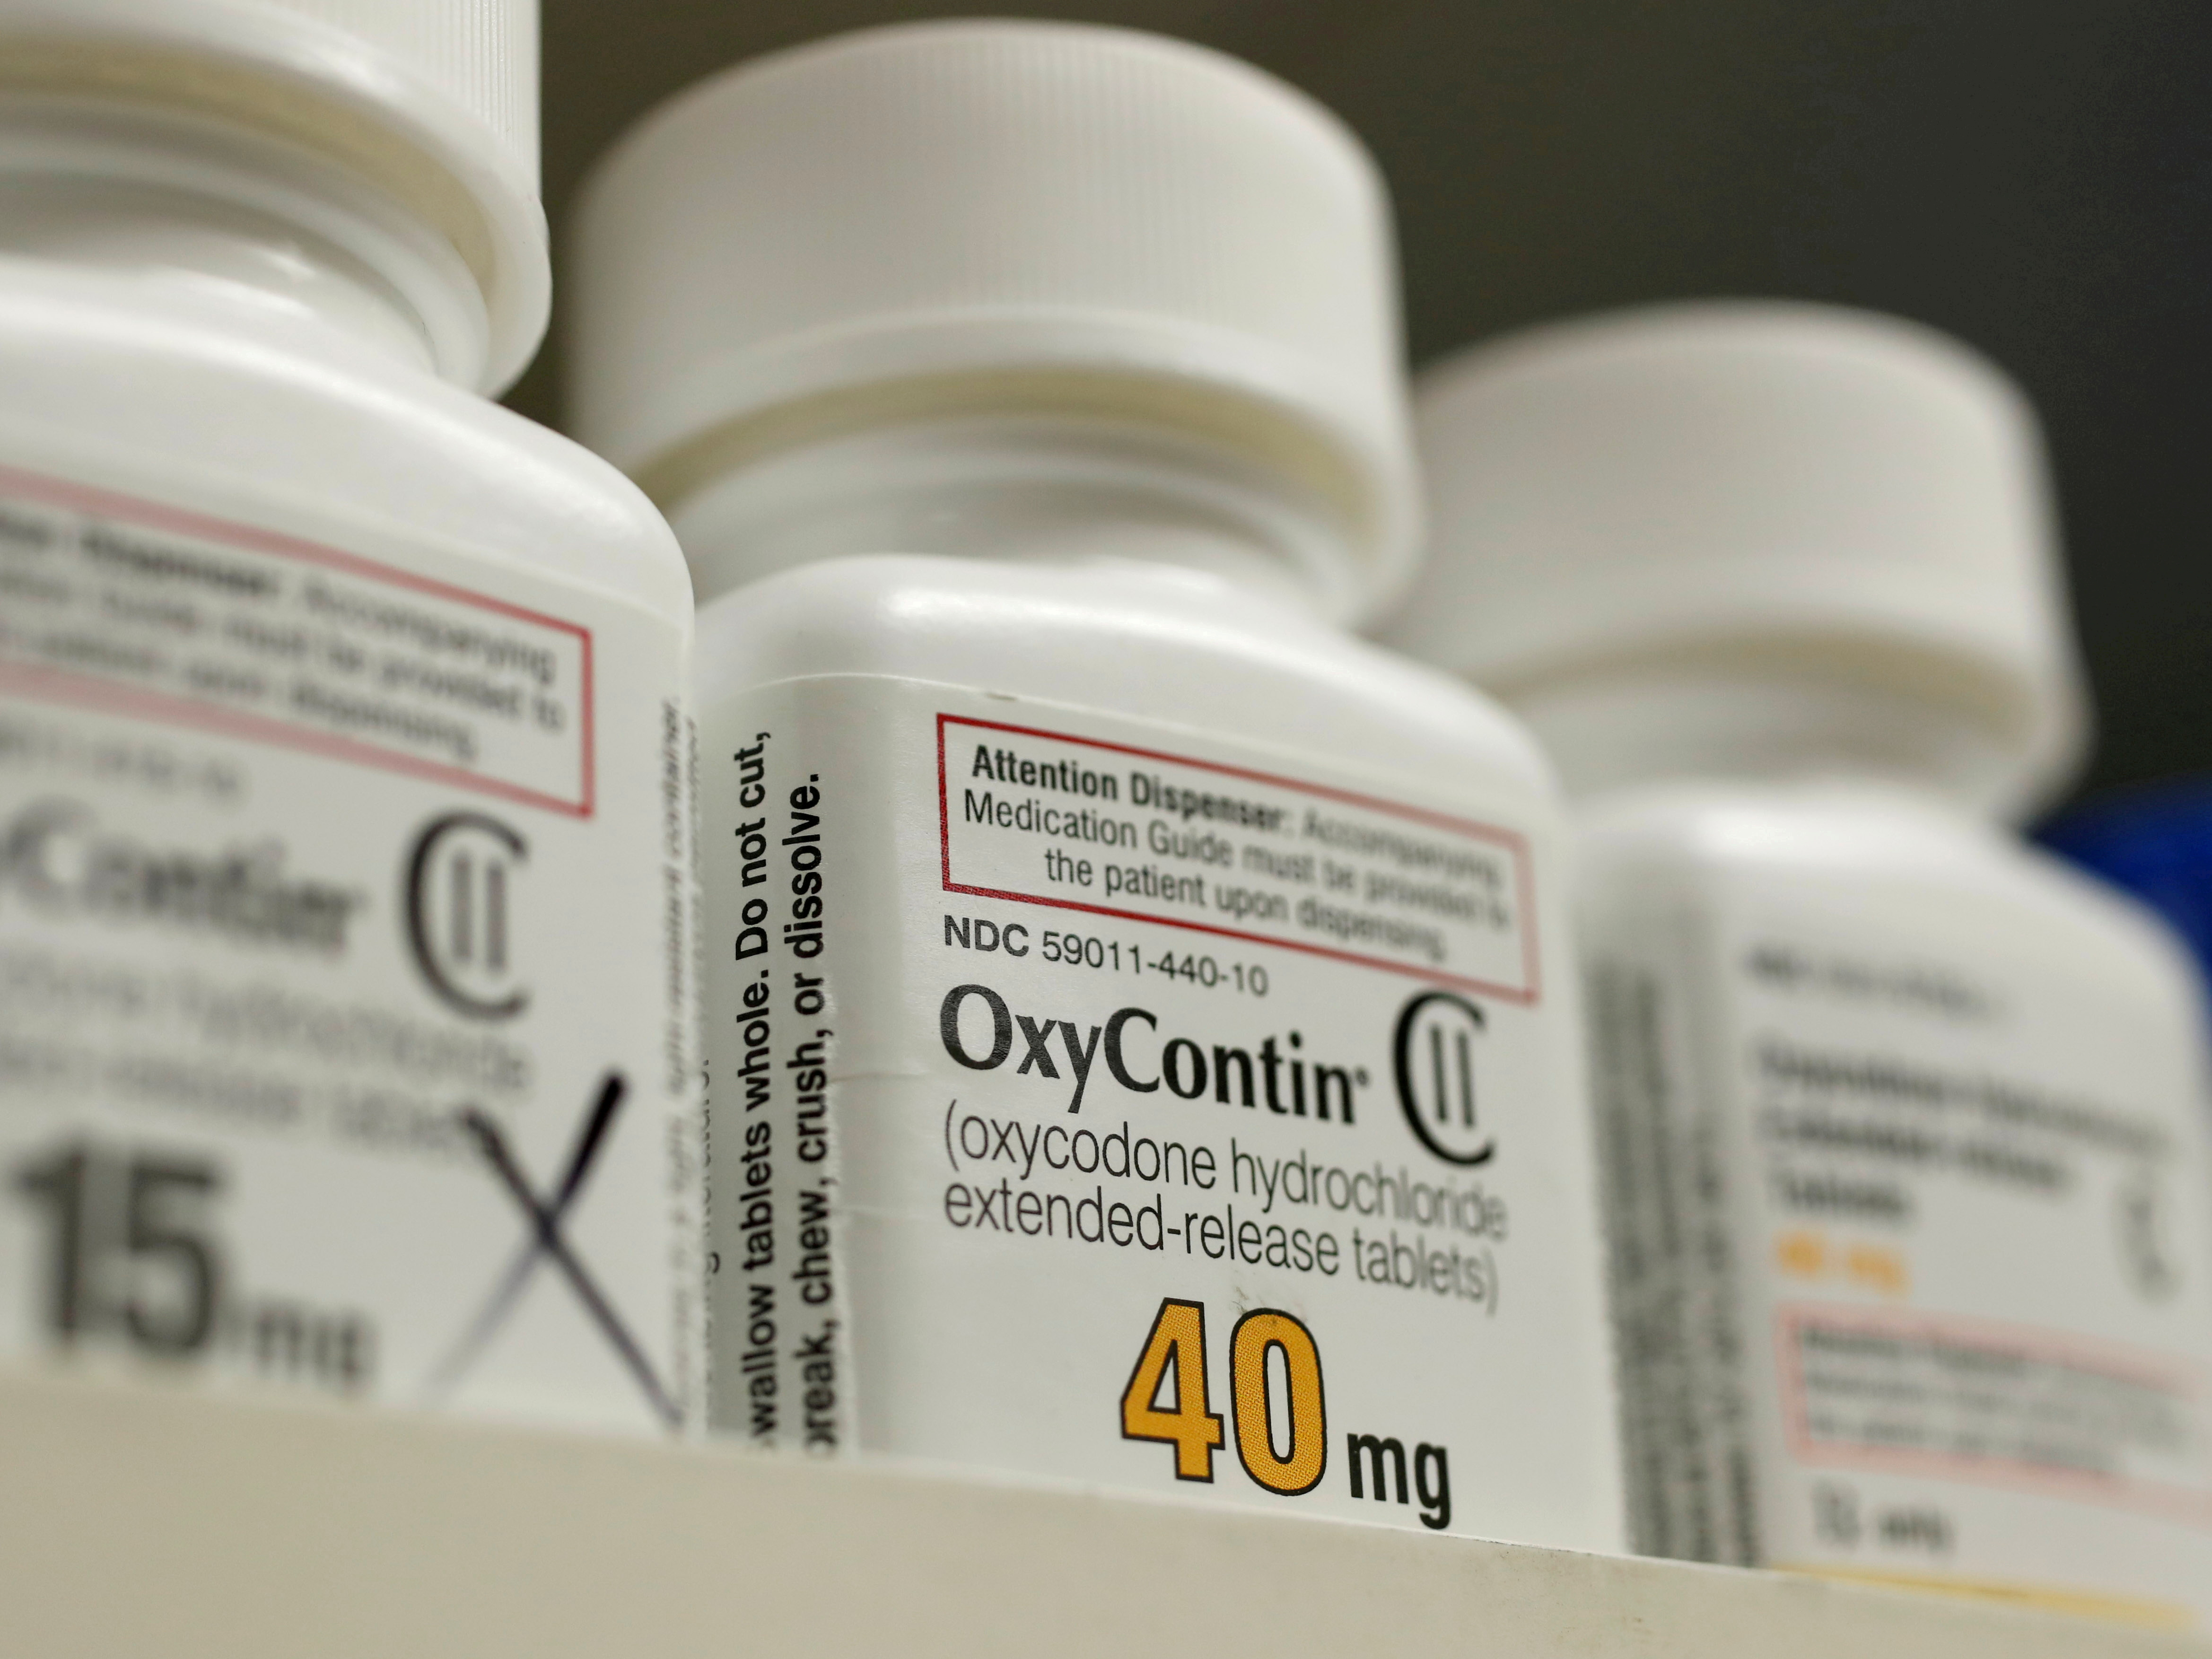 Bottles of prescription painkiller OxyContin made by Purdue Pharma LP sit on a shelf at a local pharmacy in Provo, Utah, U.S. April 25, 2017.   REUTERS/George Frey/File Photo